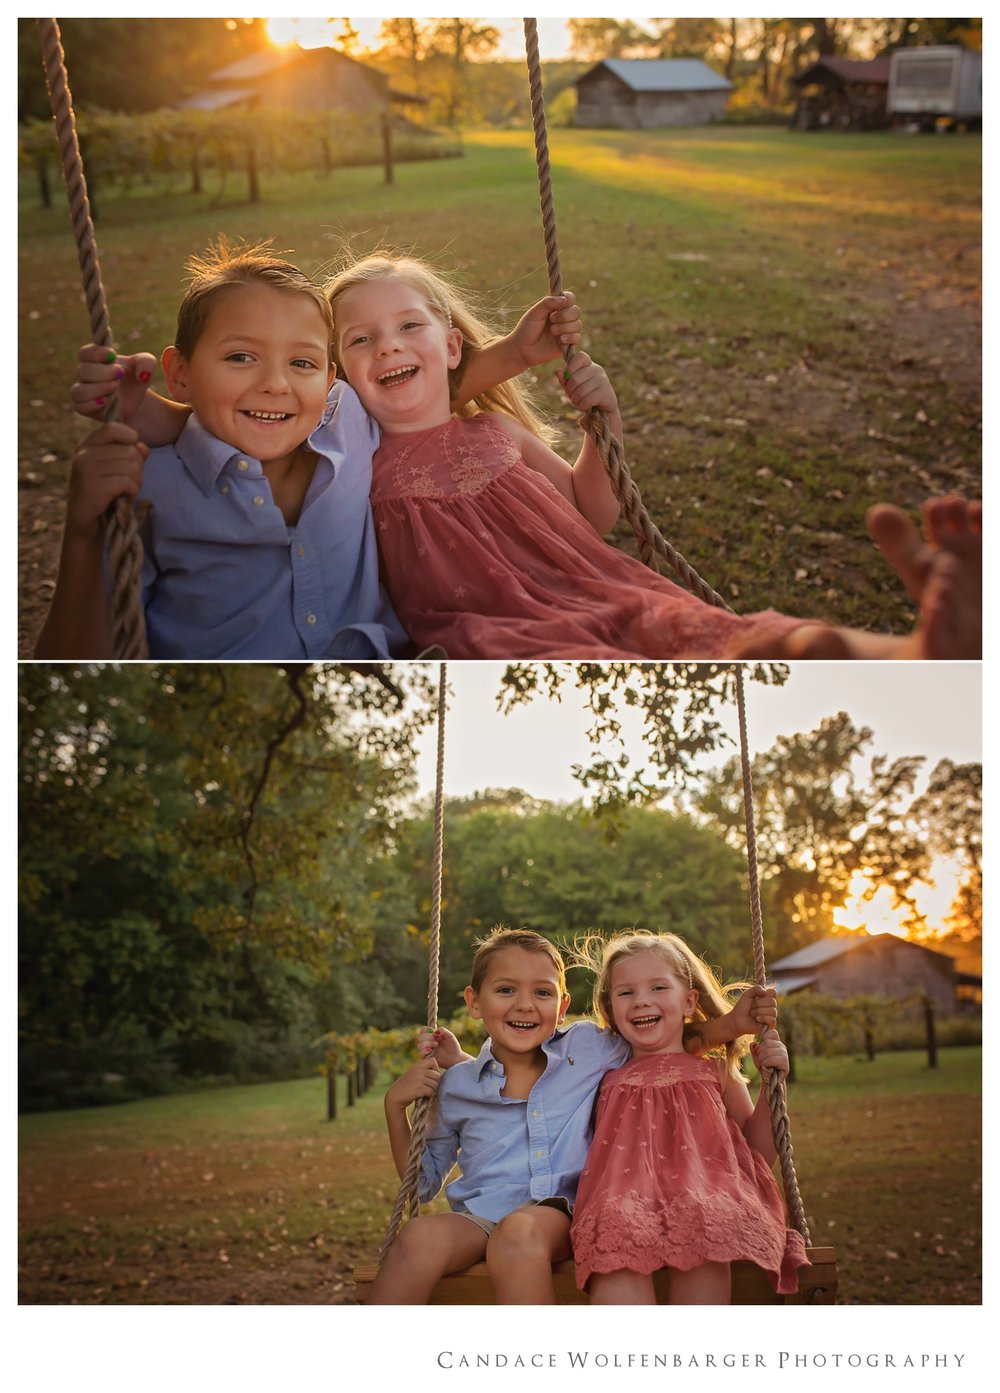 Naaman Caroline Swing Session Candace Wolfenbarger Sanford NC Childrens Photographer 2.jpg